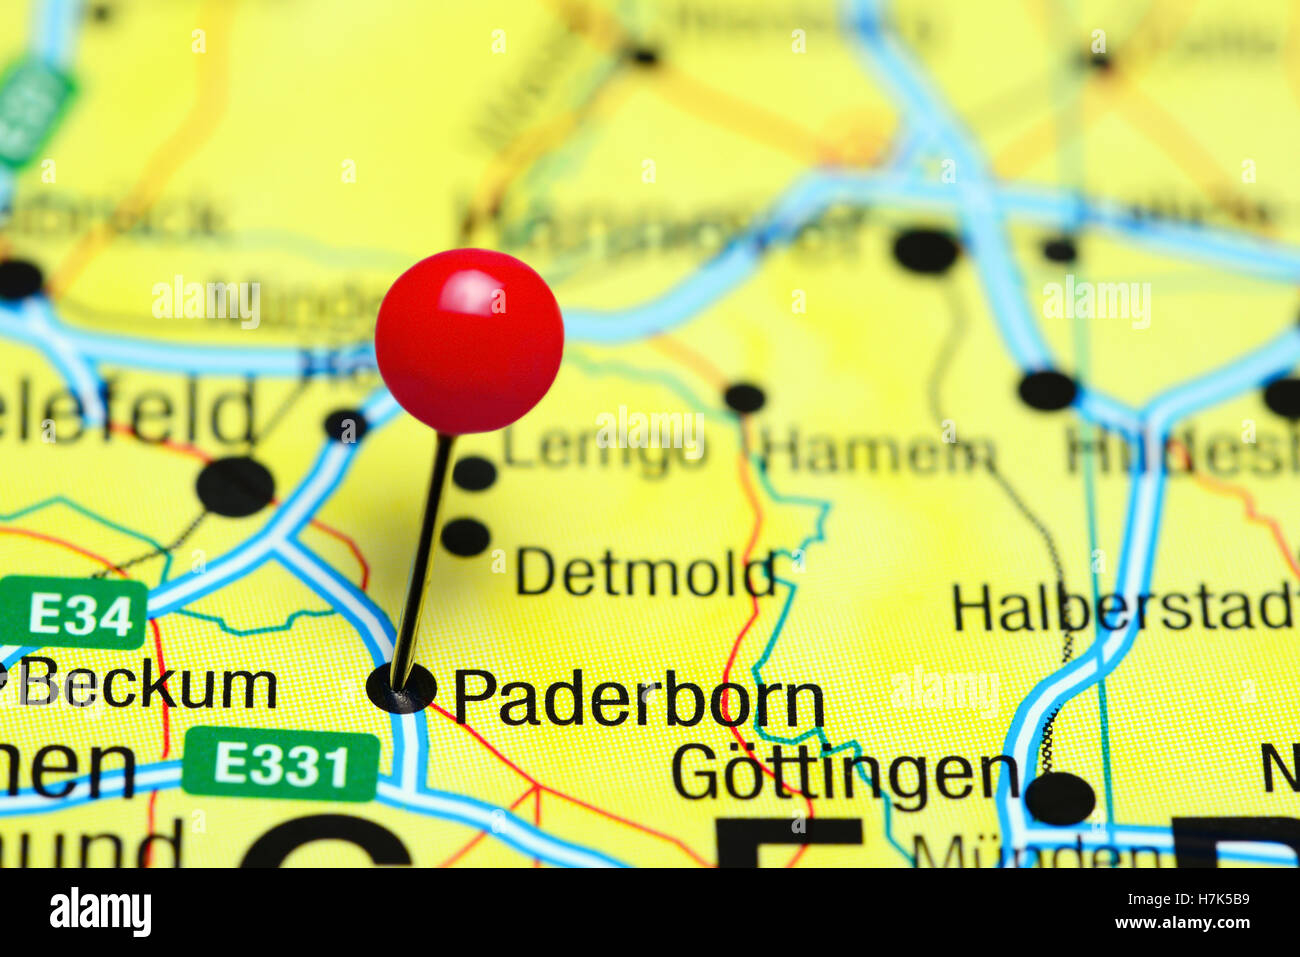 Len Paderborn paderborn pinned on a map of germany stock photo 125196493 alamy